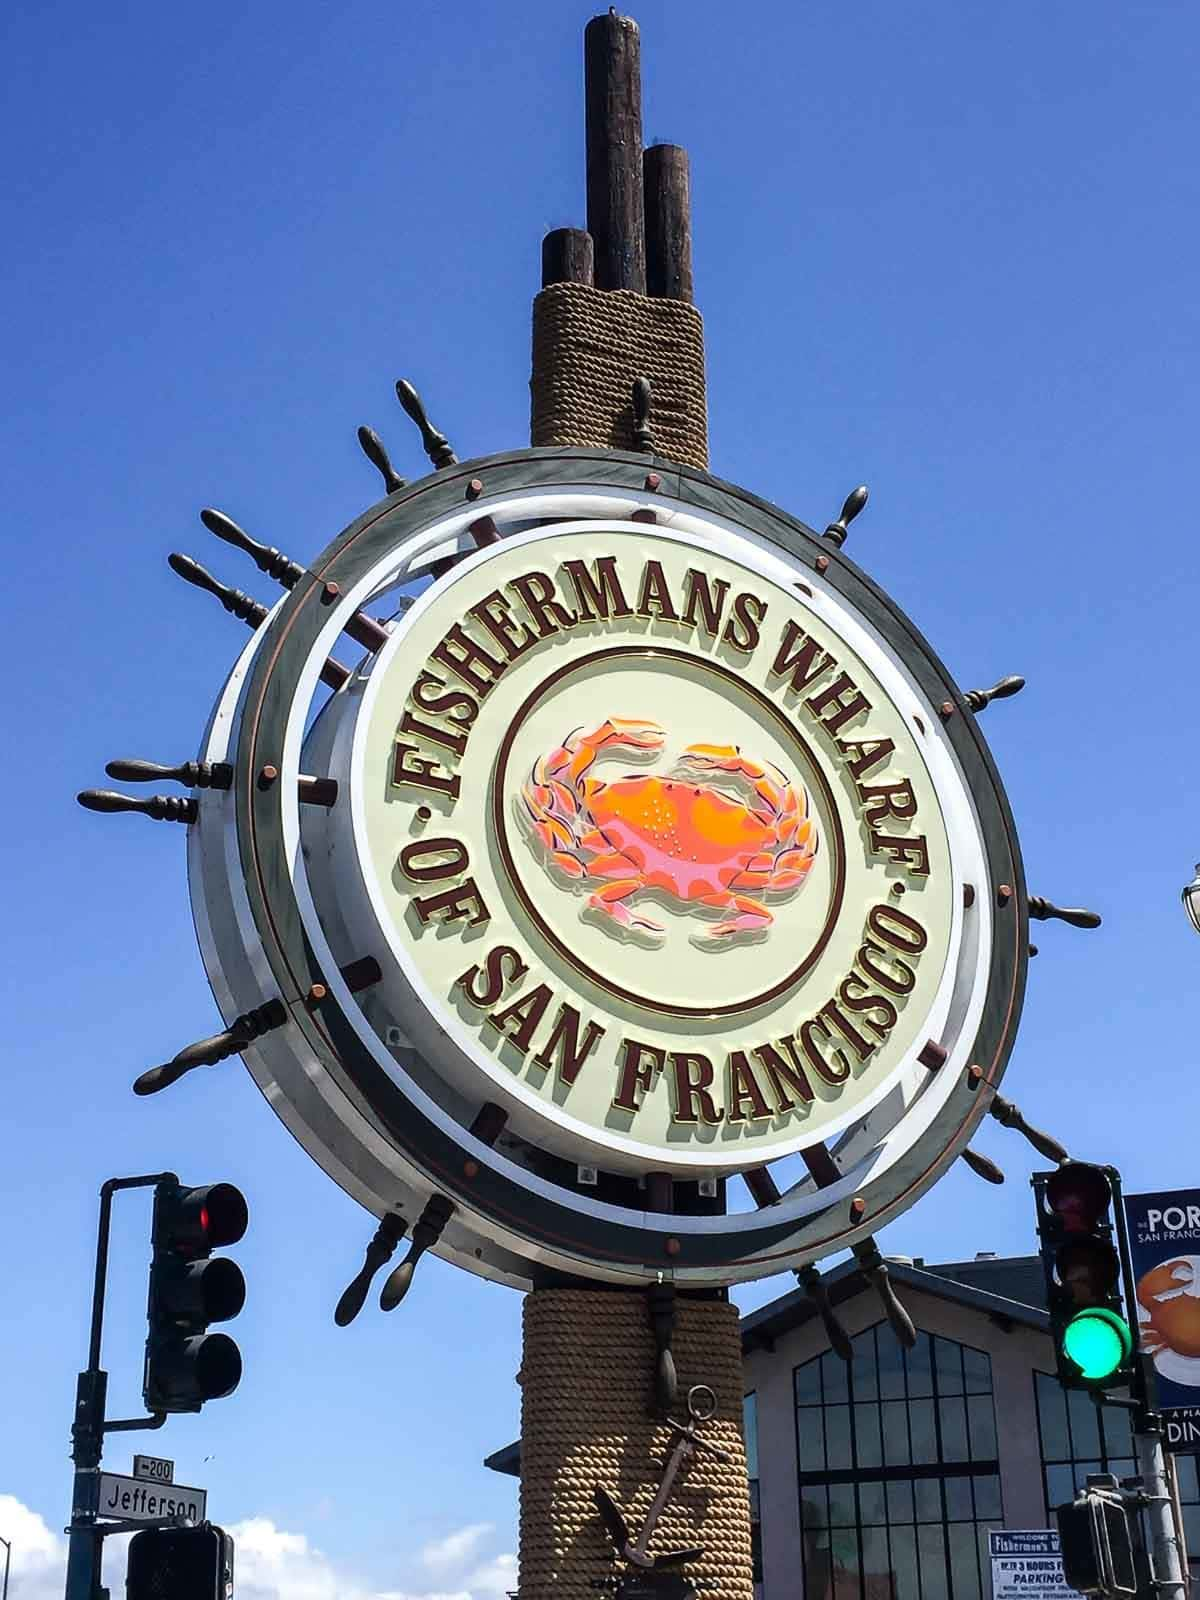 Fisherman's Wharf: A top attraction in San Francisco